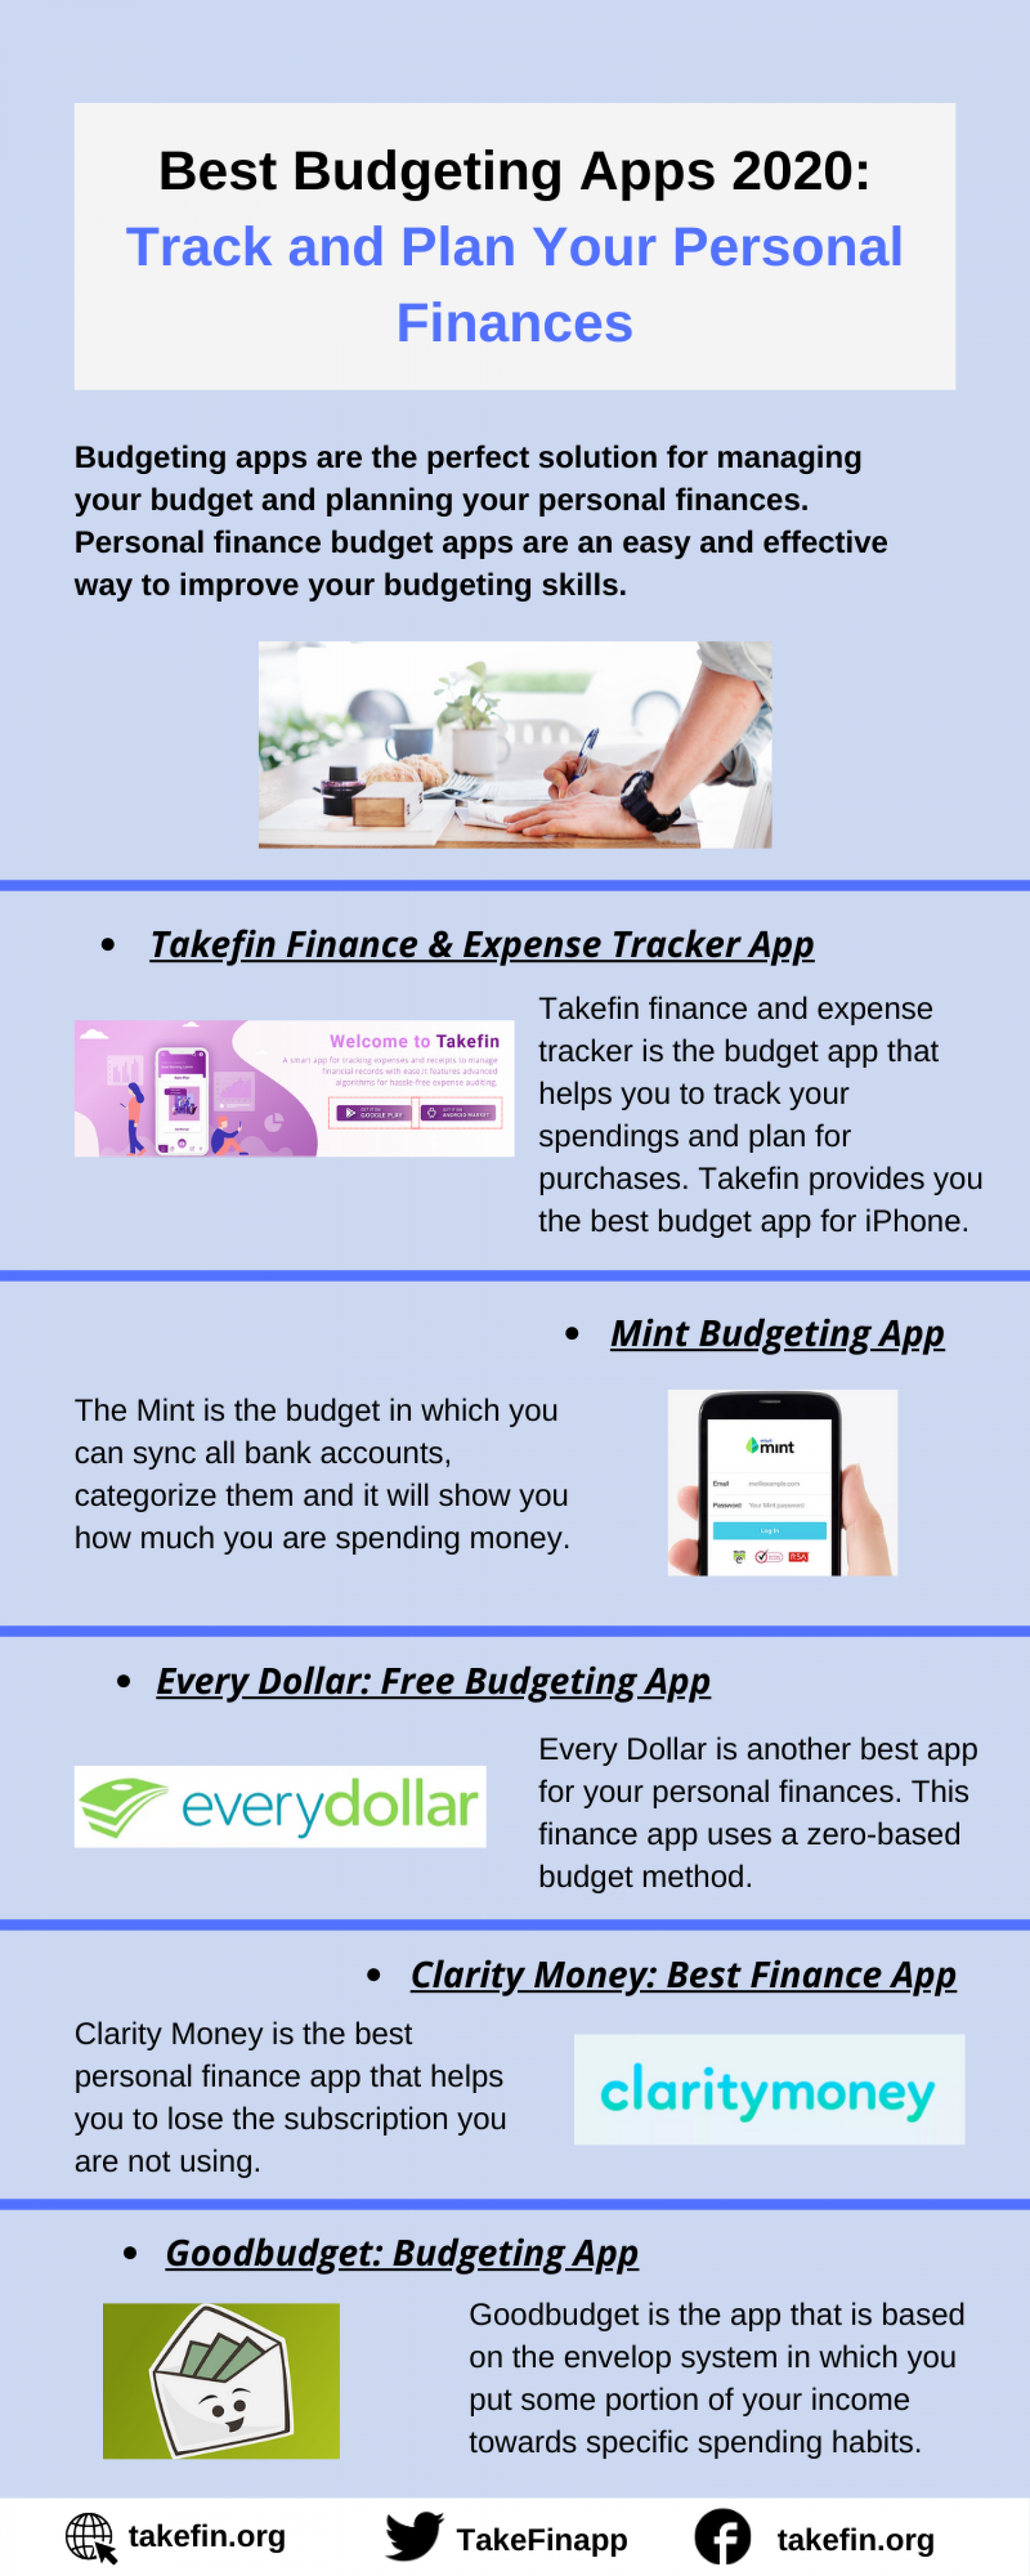 Best Budgeting Apps 2020: Track and Plan Your Personal Finances Infographic